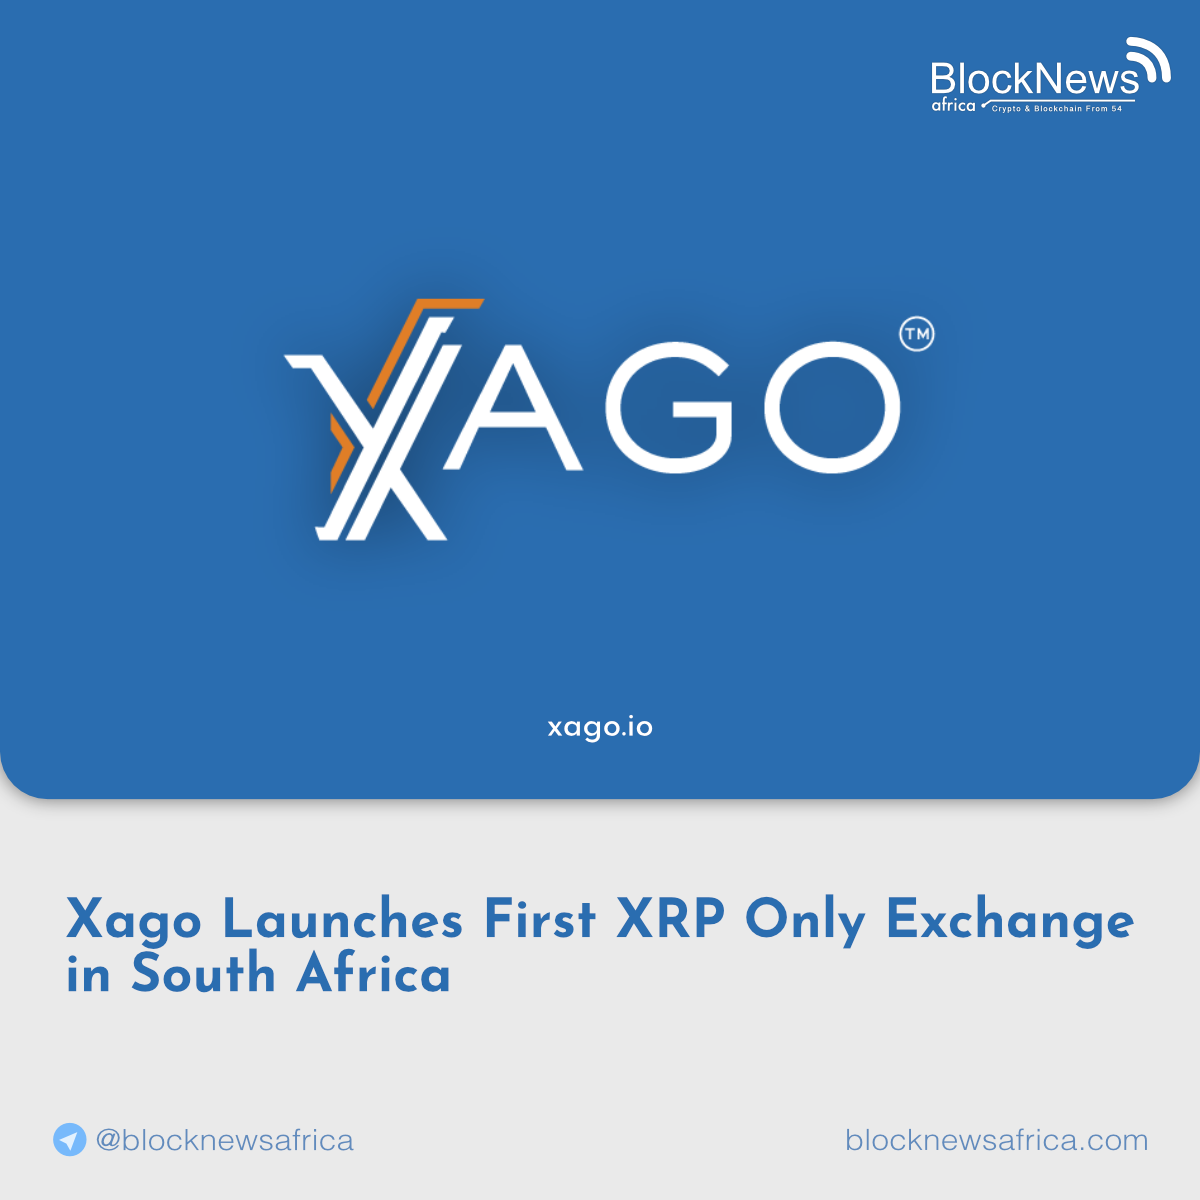 xago-first-xrp-exchange-in-south-africa